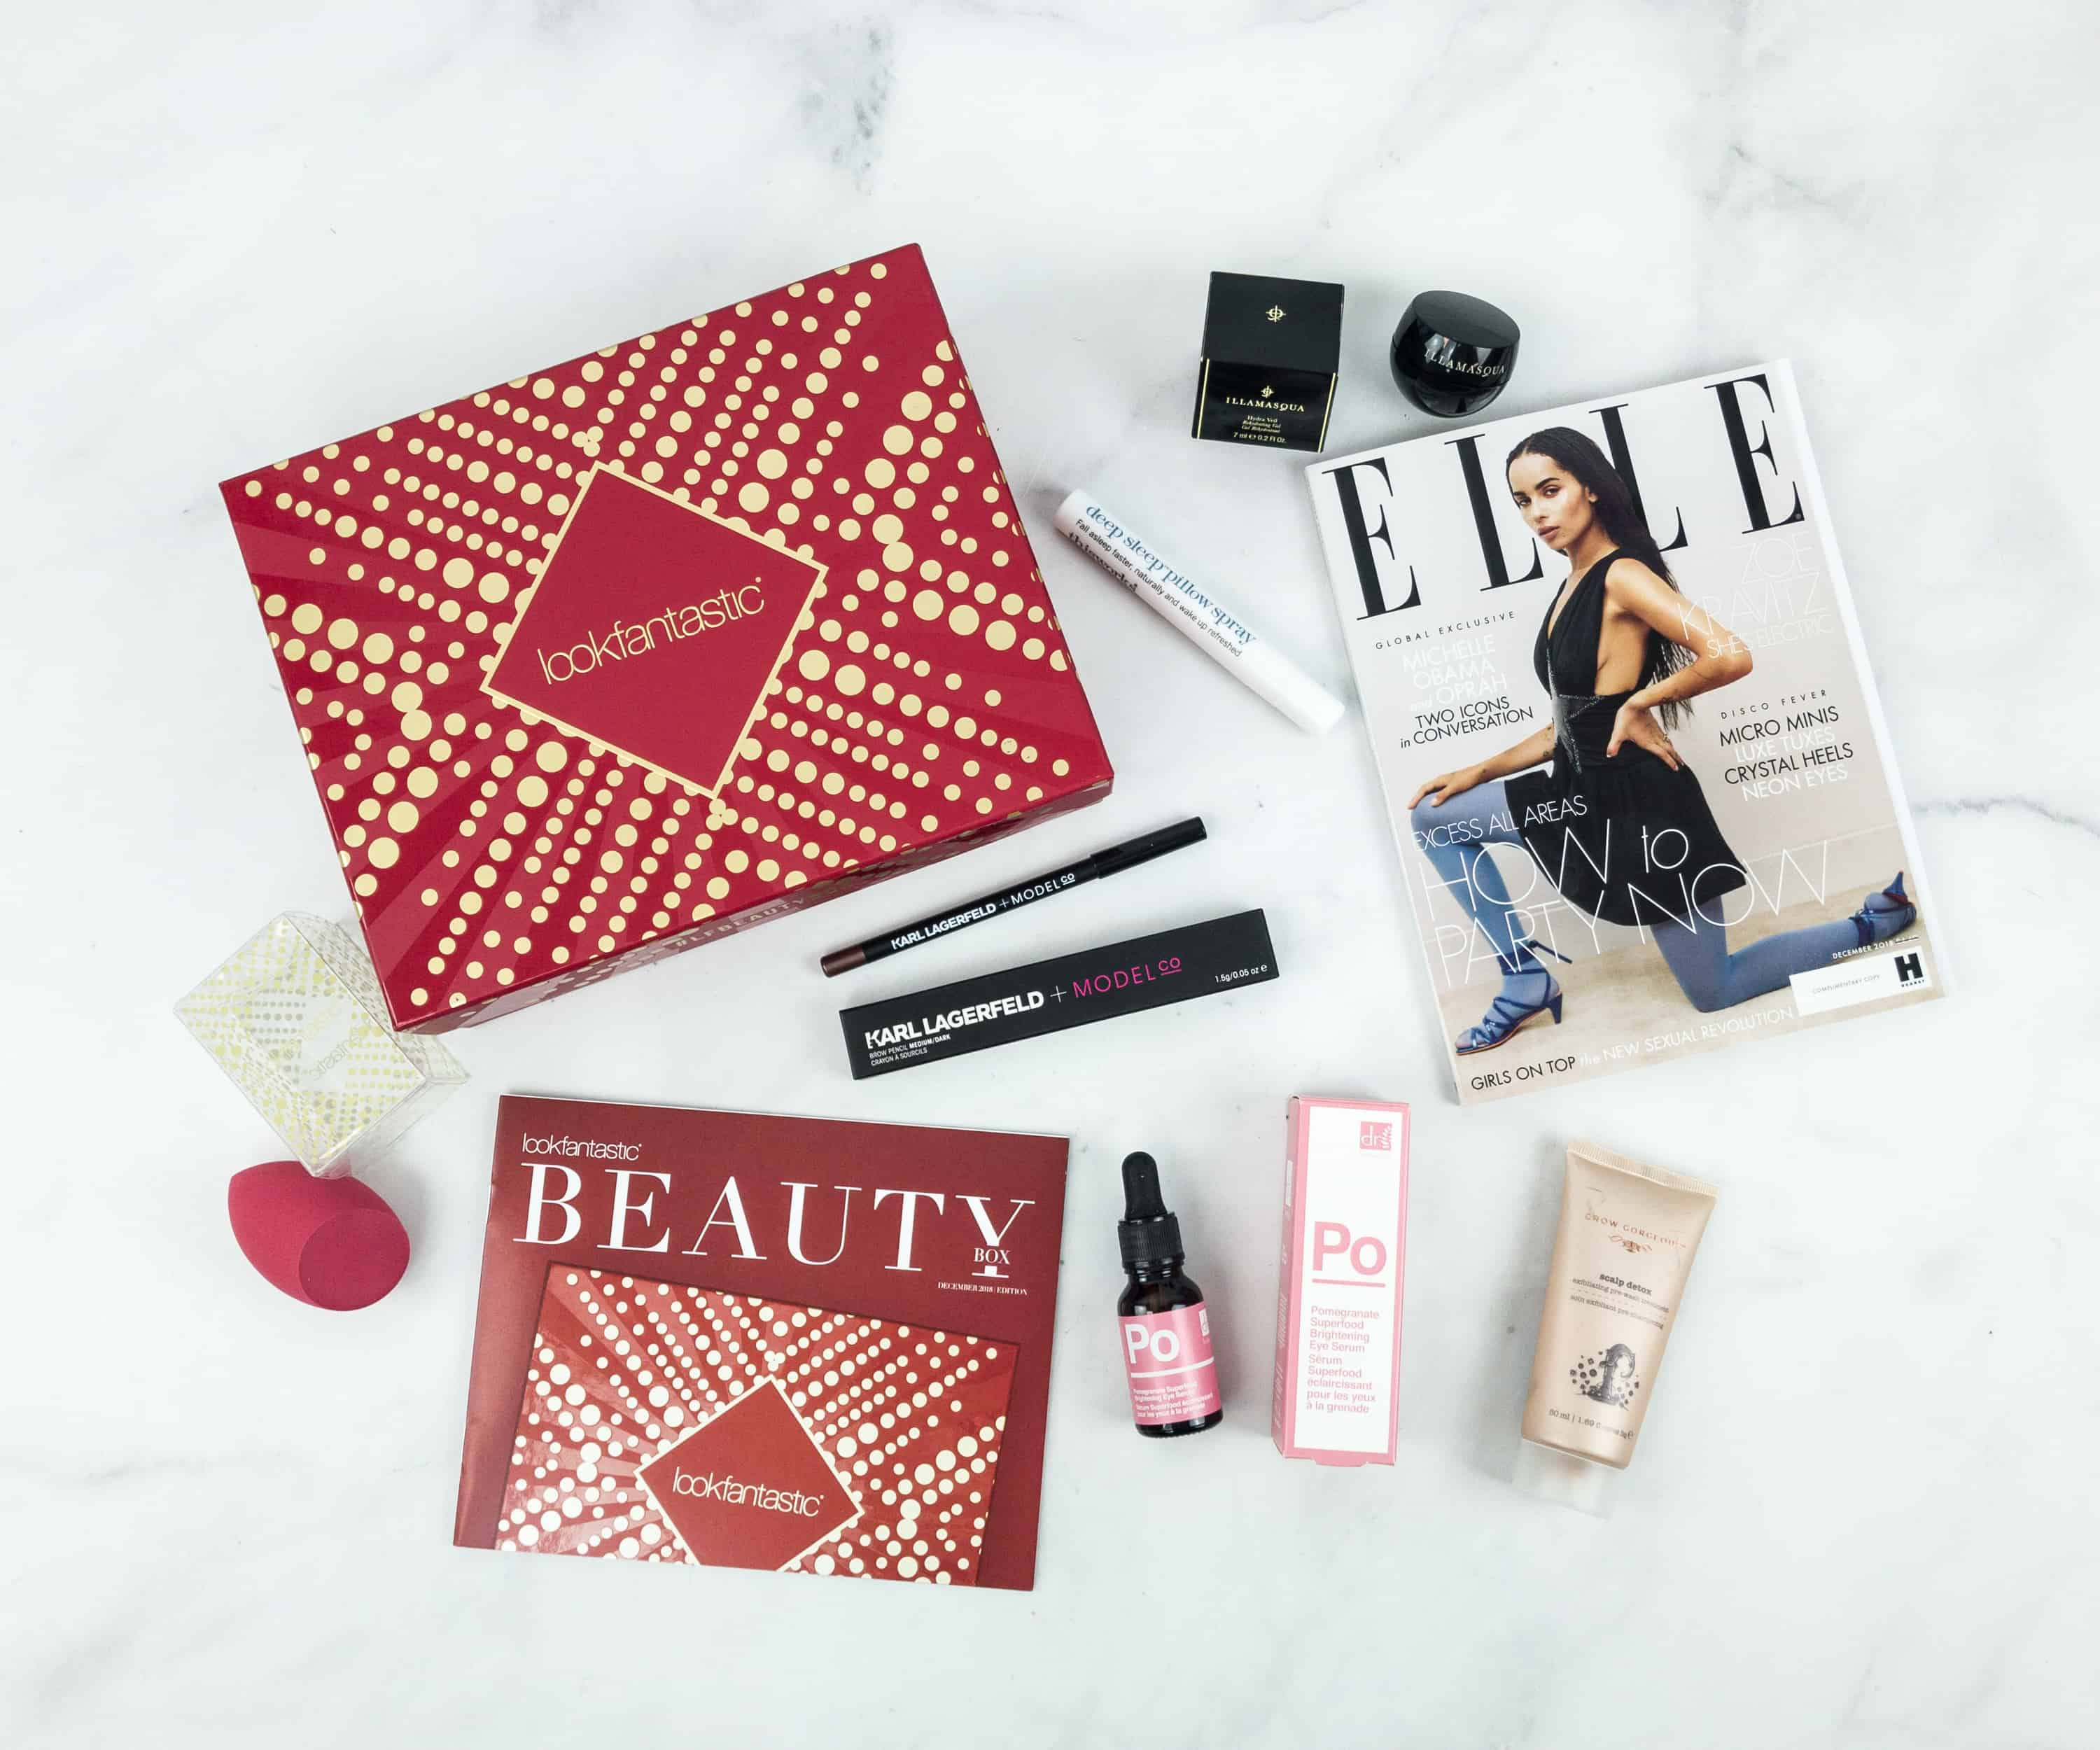 Look Fantastic Beauty Box December 2018 Subscription Box Review